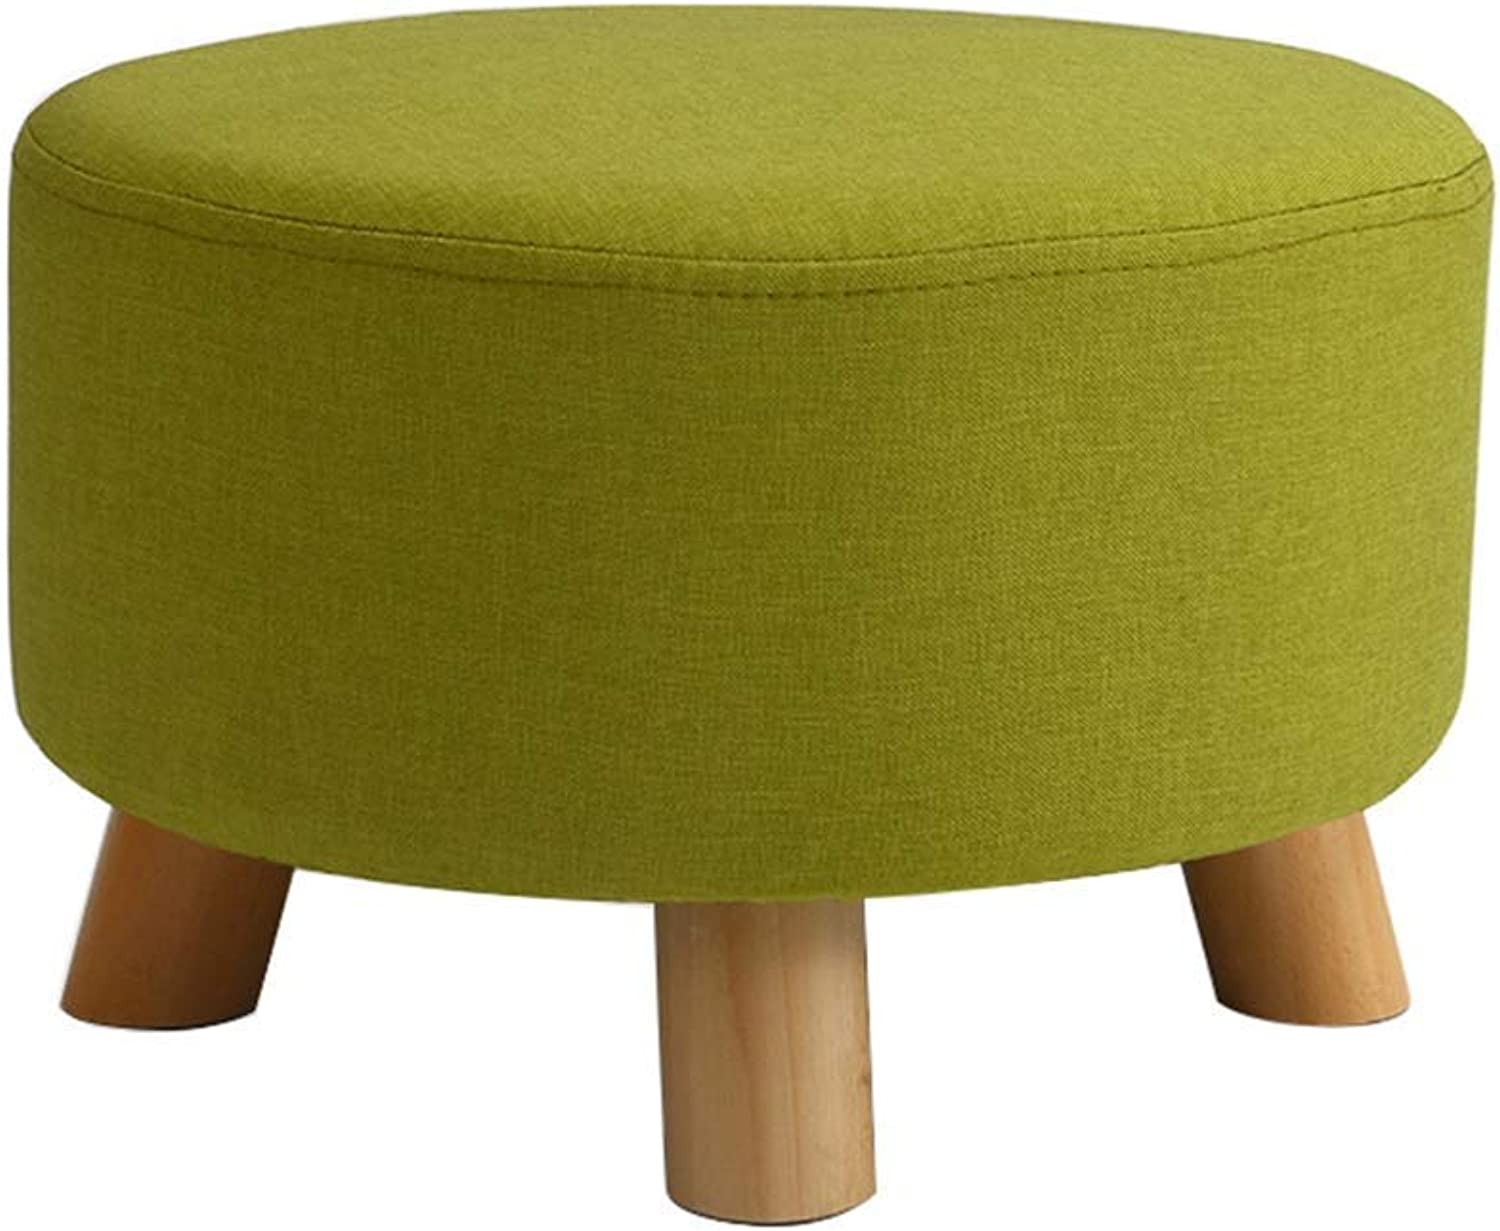 Large Round Footstool Padded Solid Wood Stool, 4 Legs, 42 × 42 × 26 cm (Length × Width × Height), Bearing 150 Kg (Green)